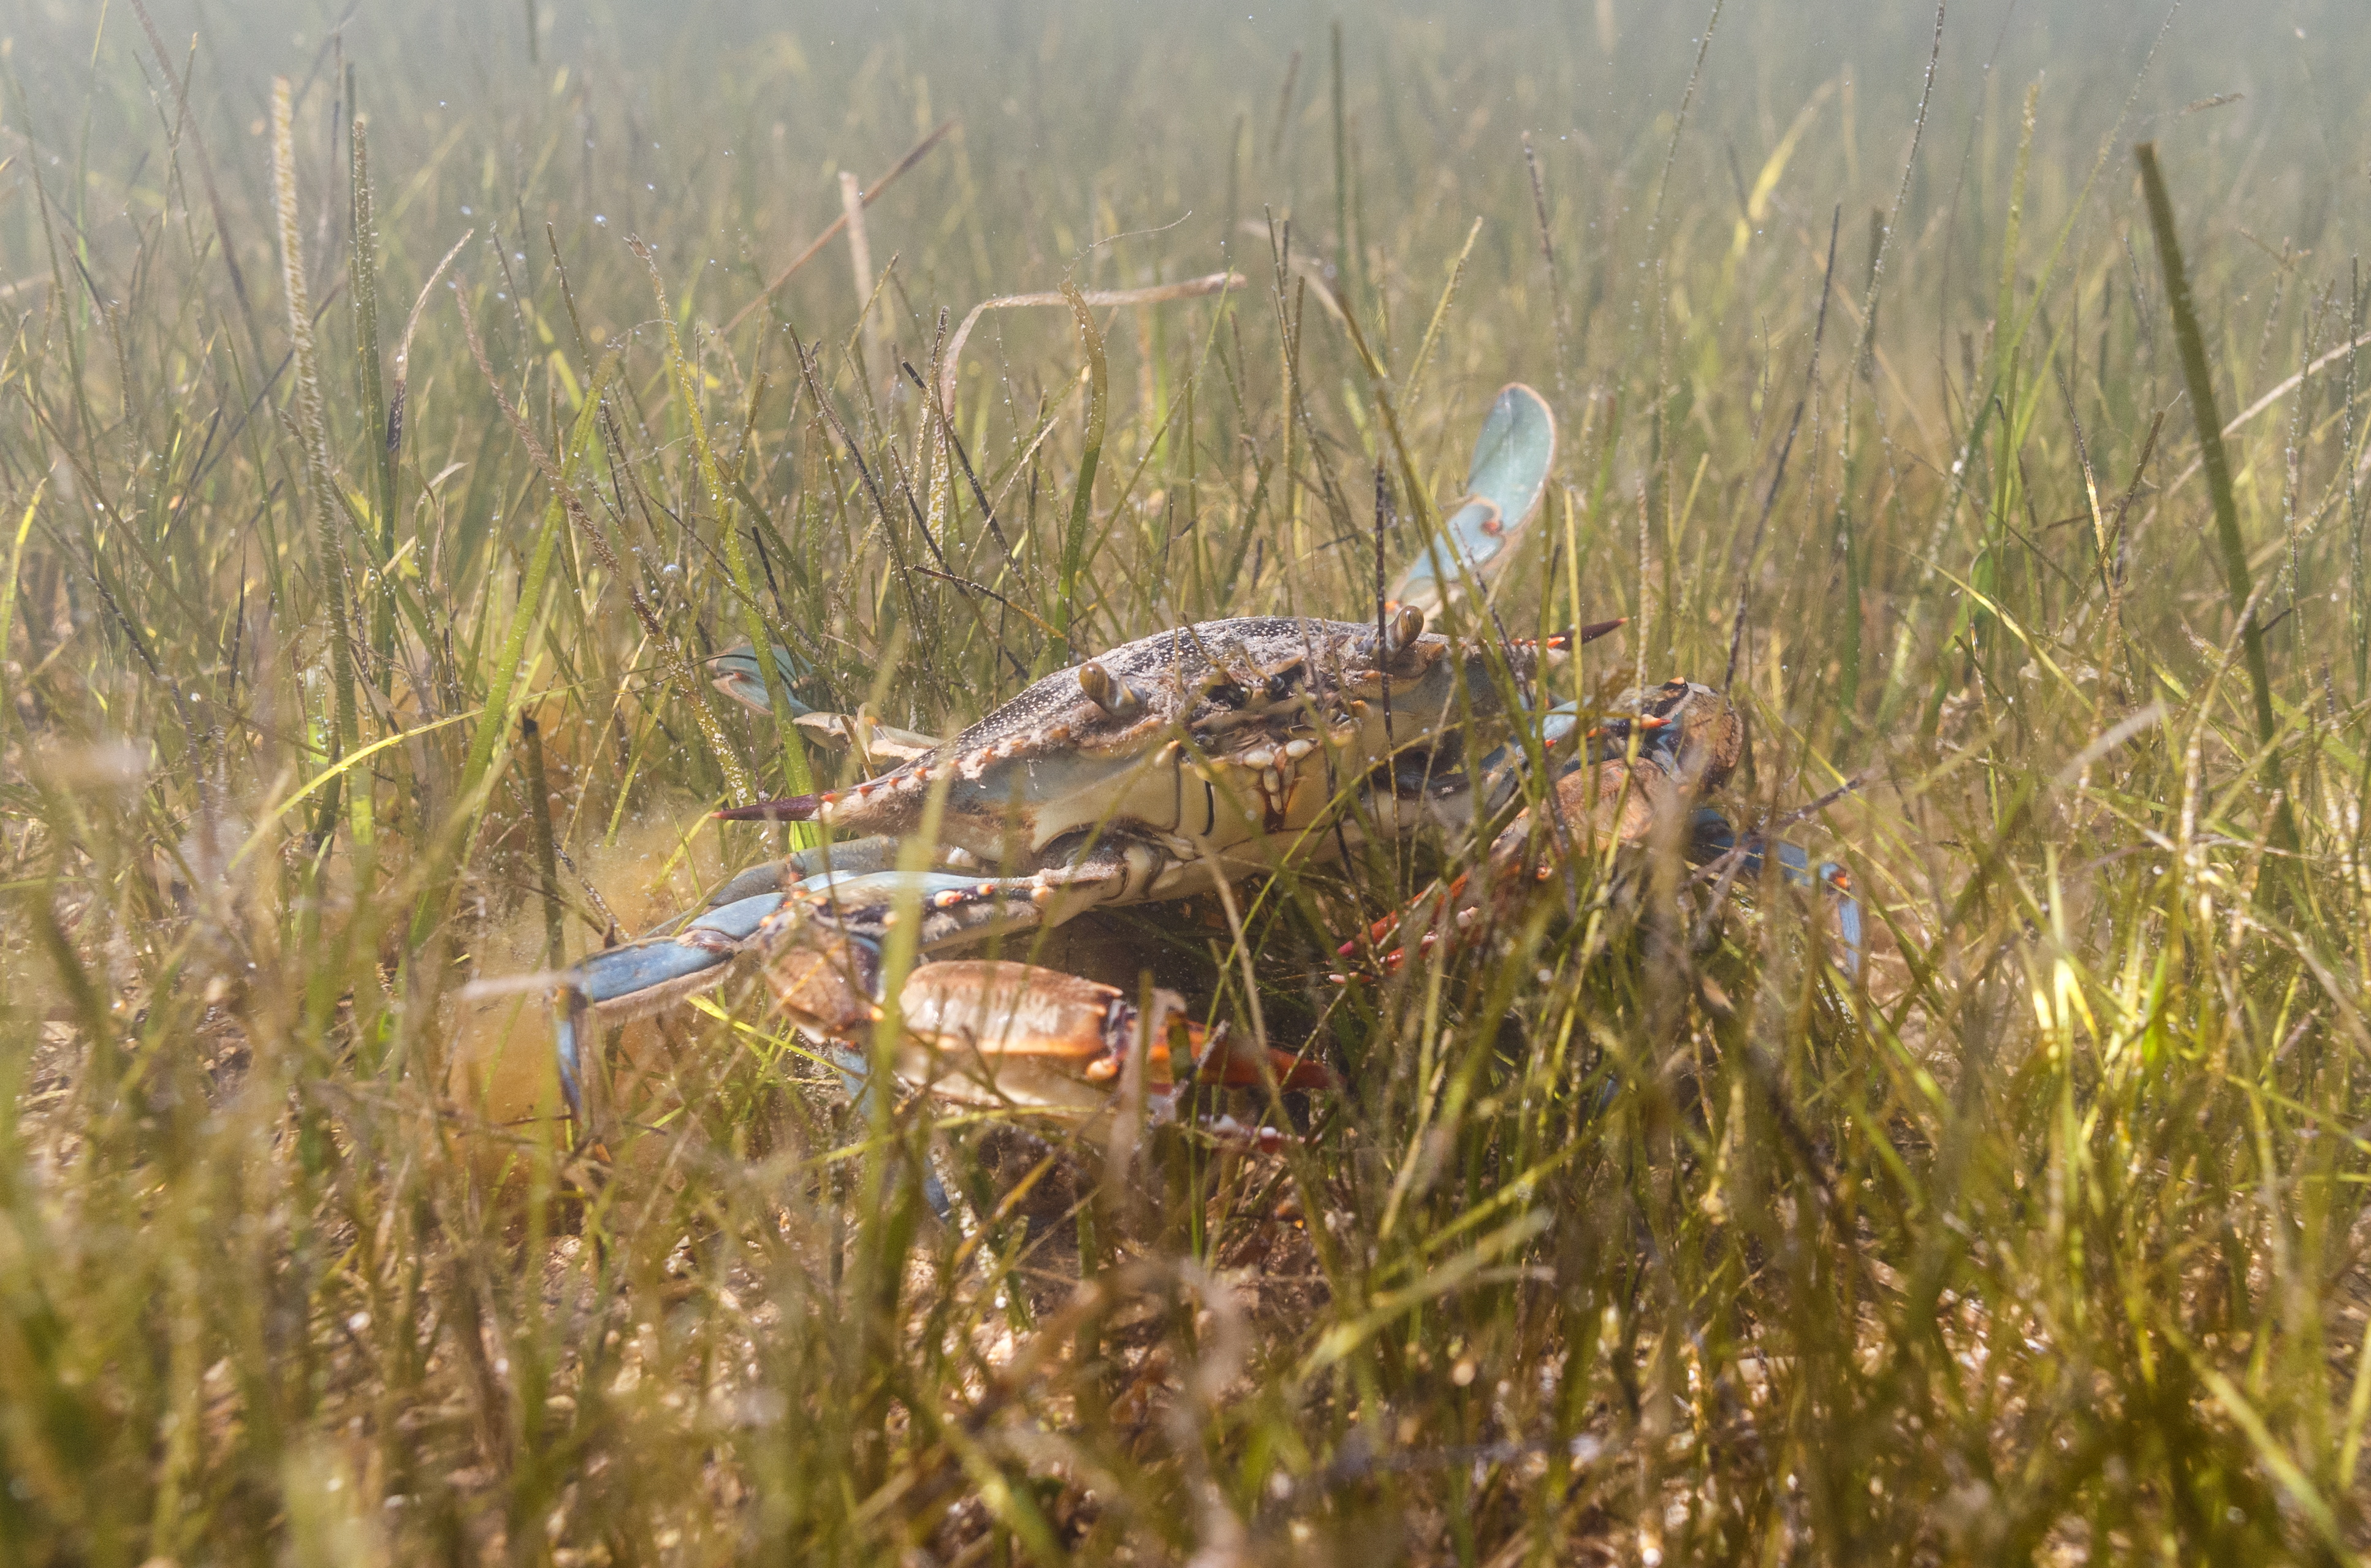 Blue crab is seen in Adriatic Sea near Ploce, Croatia, May 11, 2021. Picture taken May 11, 2021. REUTERS/Antonio Bronic